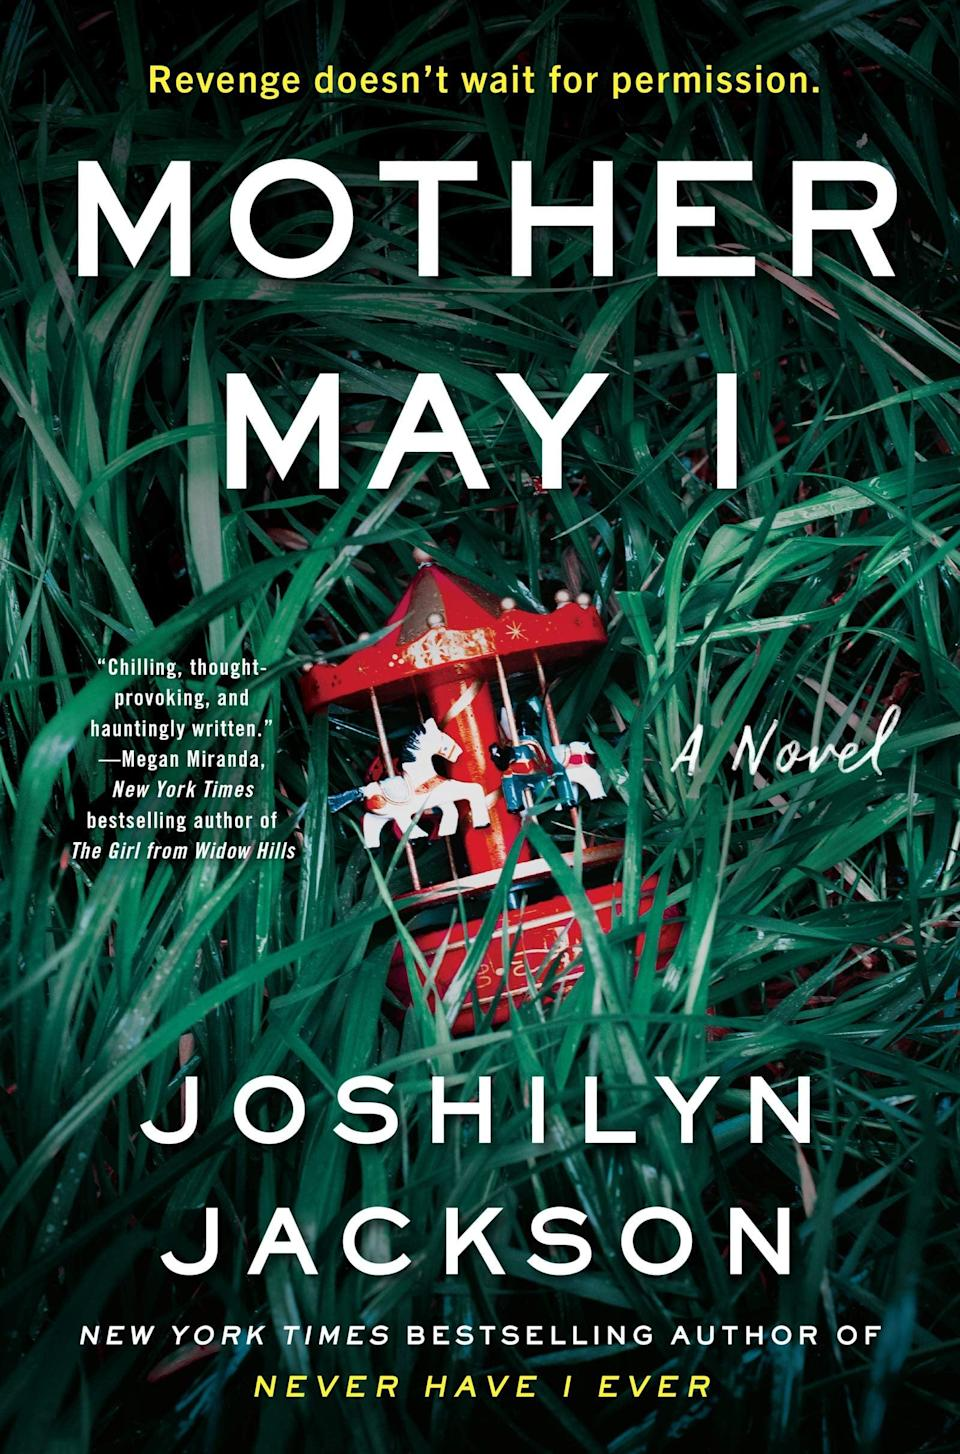 "<p><a href=""https://www.amazon.com/Mother-May-Novel-Joshilyn-Jackson/dp/0062855344"" class=""link rapid-noclick-resp"" rel=""nofollow noopener"" target=""_blank"" data-ylk=""slk:Mother May I""><strong>Mother May I</strong></a> by Joshilyn Jackson will leave you breathless. This nail-biter focuses on a mother whose baby is stolen by a mysterious woman who wants her to complete a seemingly simple task in order to get her son back. However, the situation she has found herself in is far more dangerous than she ever could have imagined. </p> <p><em>Out April 6</em></p>"